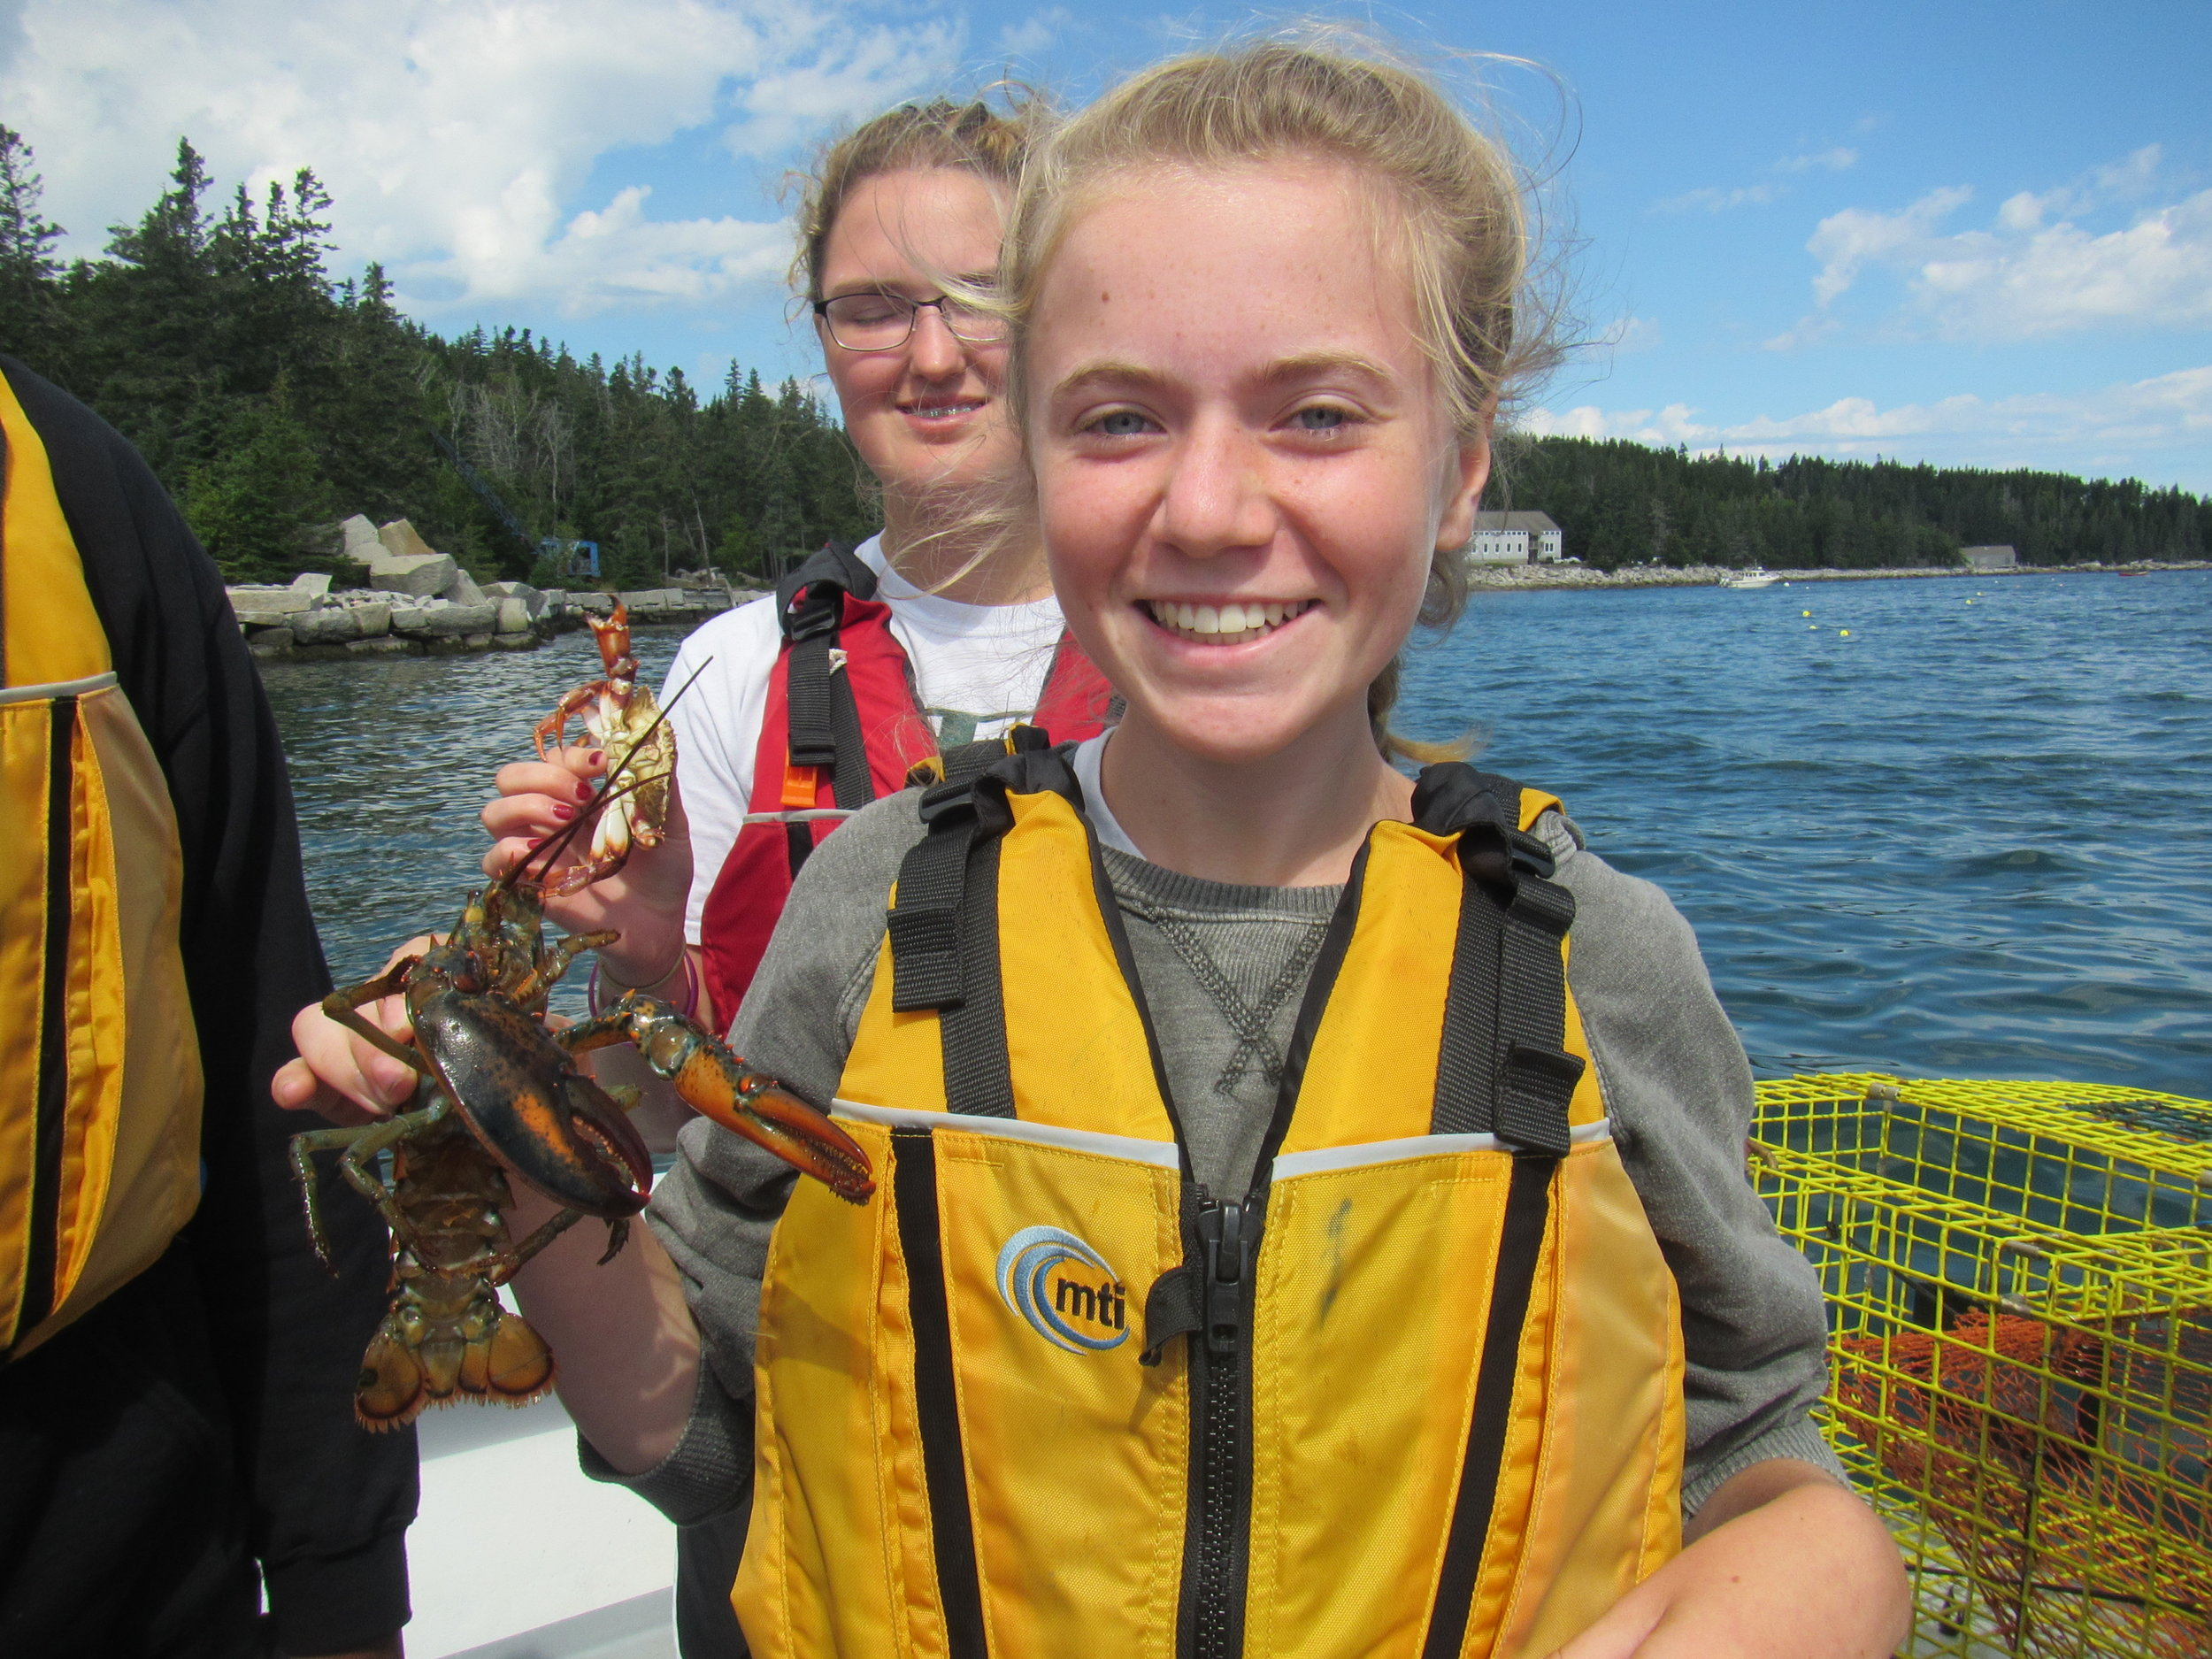 HS_MarineEco_lobster selfie 1.jpg